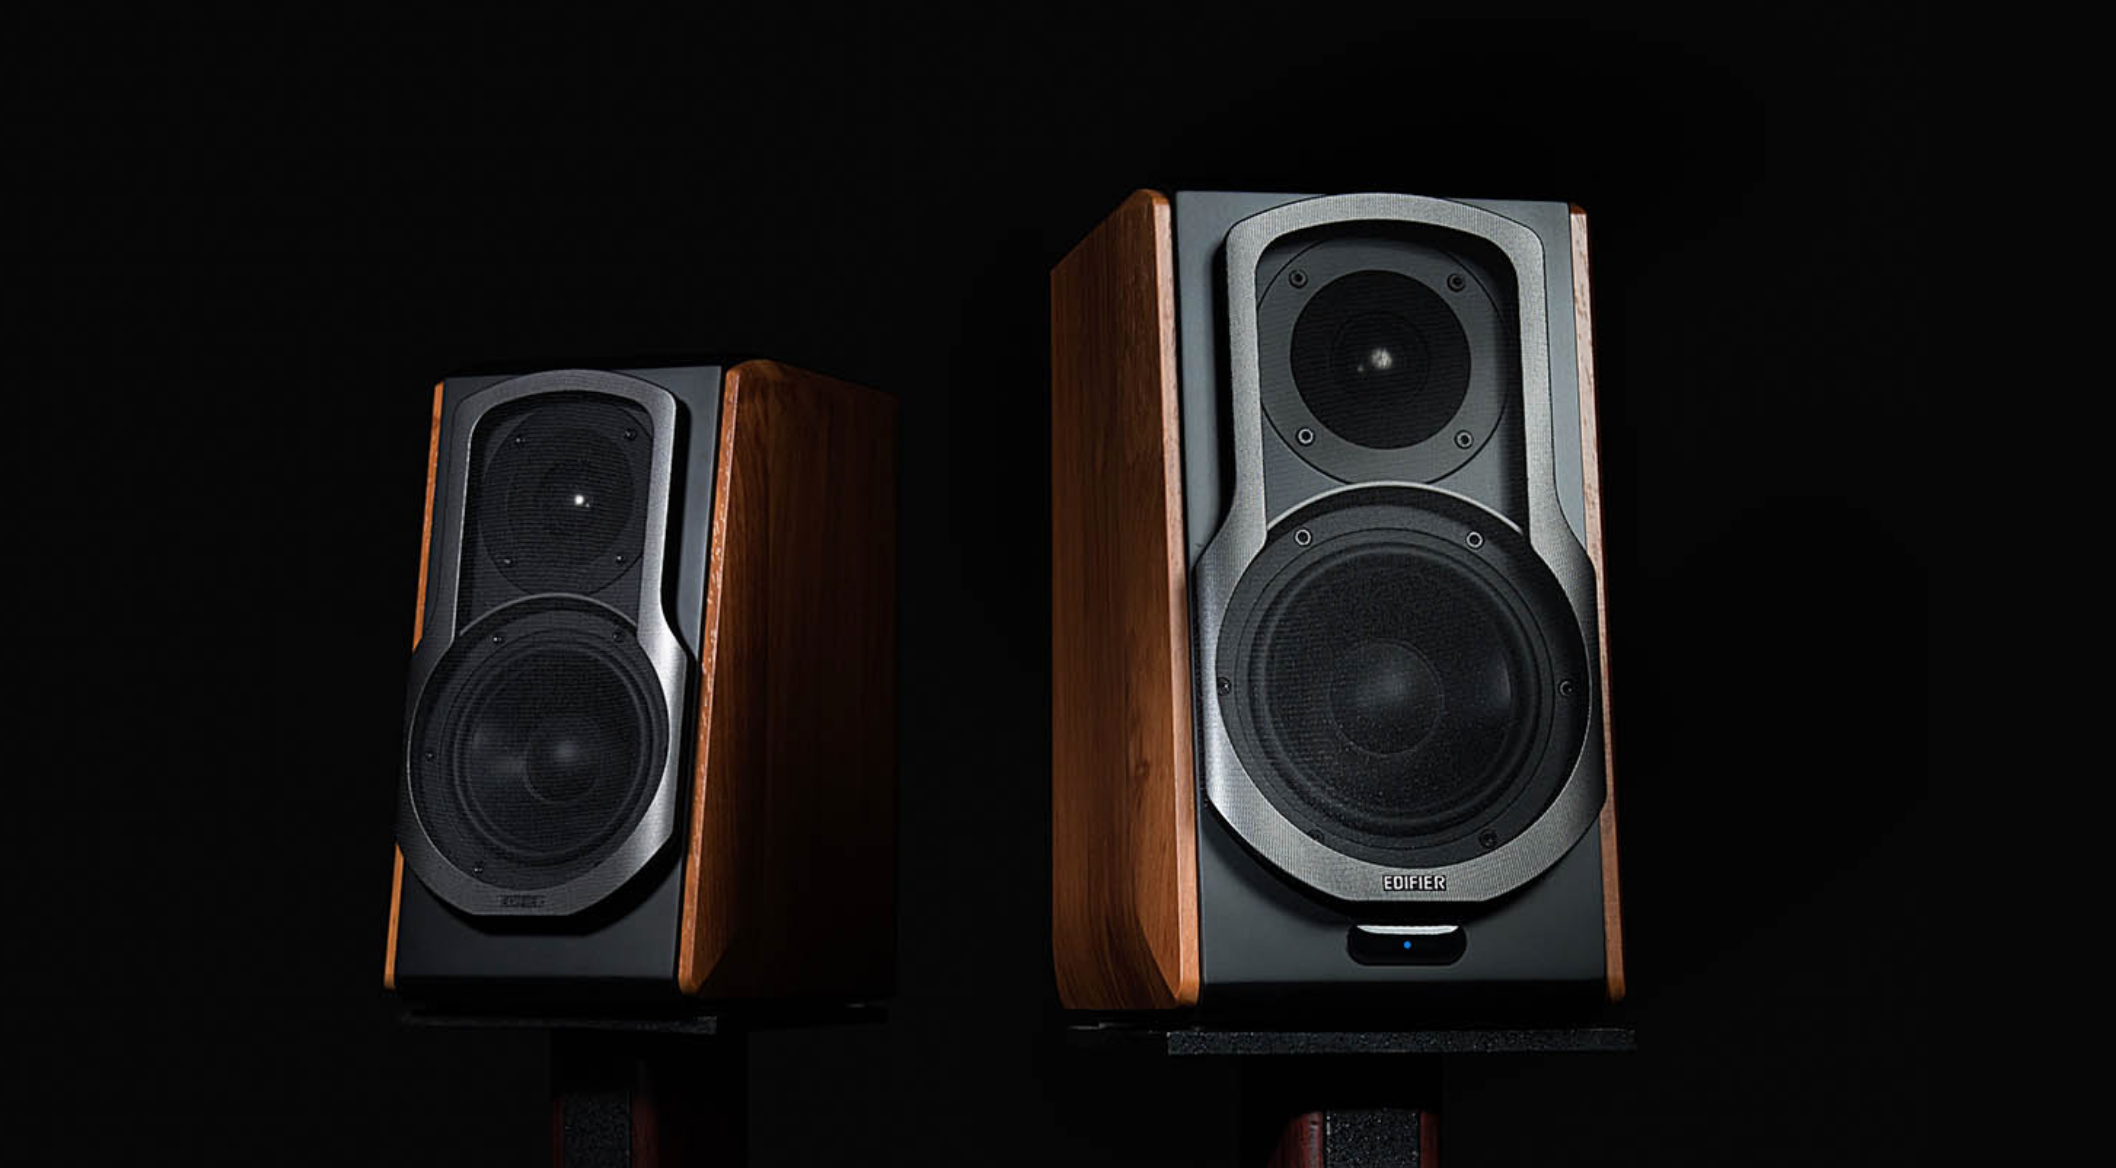 Review Edifier S1000db Big Bold Speakers Which Pack A Punch Hi Fi Pc Speaker System As Premium Continue To Decrease In Size Edifiers Sb1000db Active Bluetooth Bookshelf Dare Go The Other Way These Retroesque